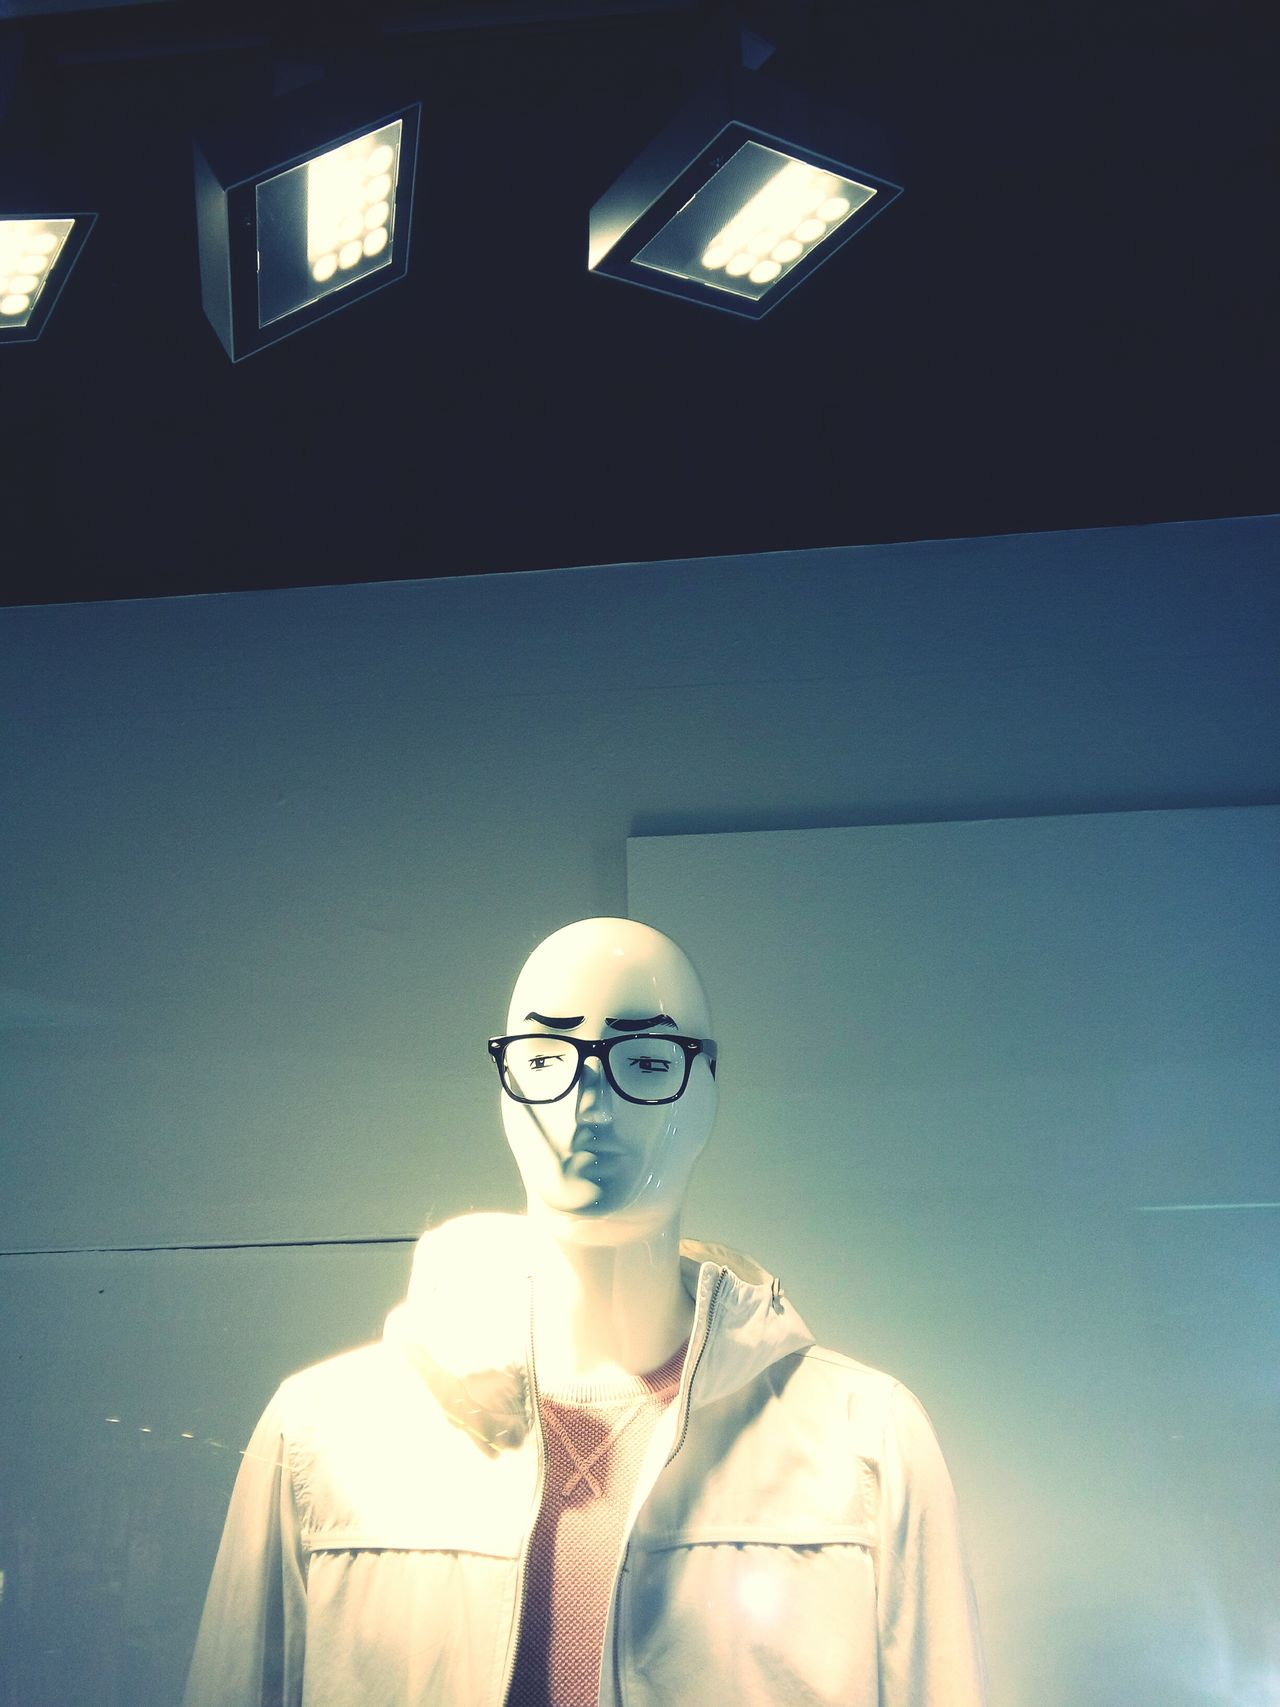 Eyeglasses  Contemplation Front View Indoors  Business Dummy Dummy Heads Shop Clothes Shop Retail  Display Fashion